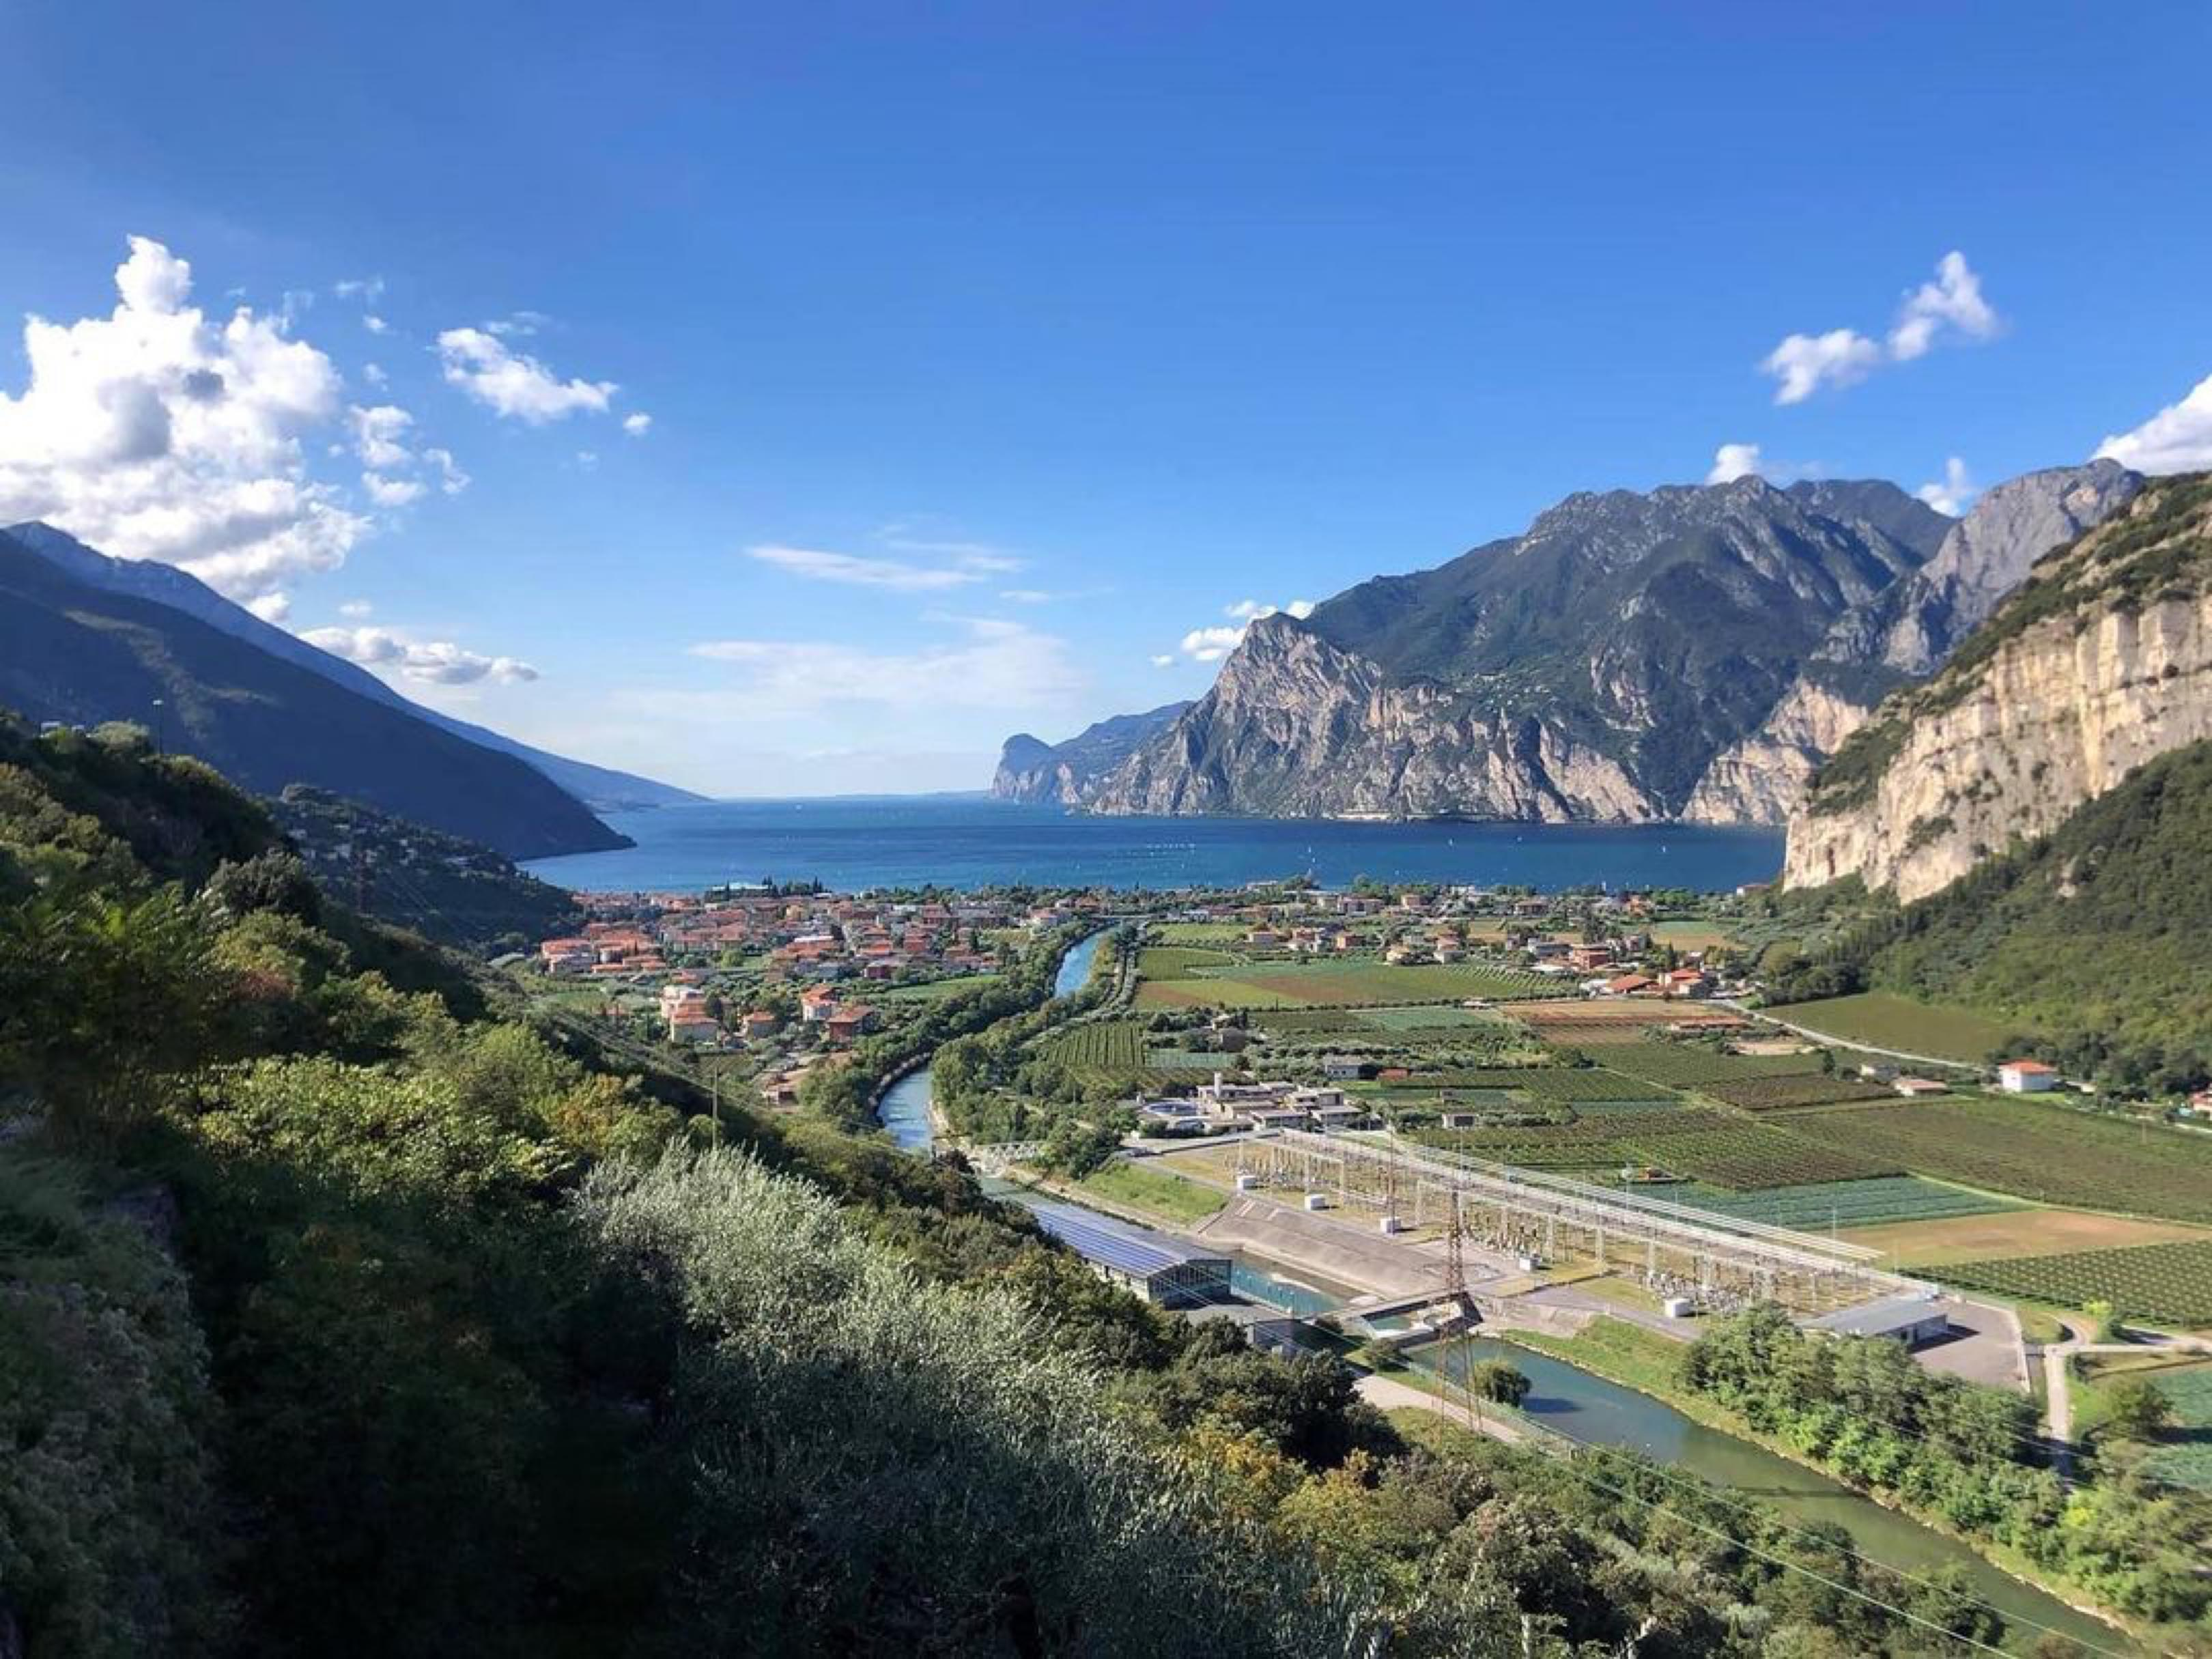 5 things you don't know about Lake Garda